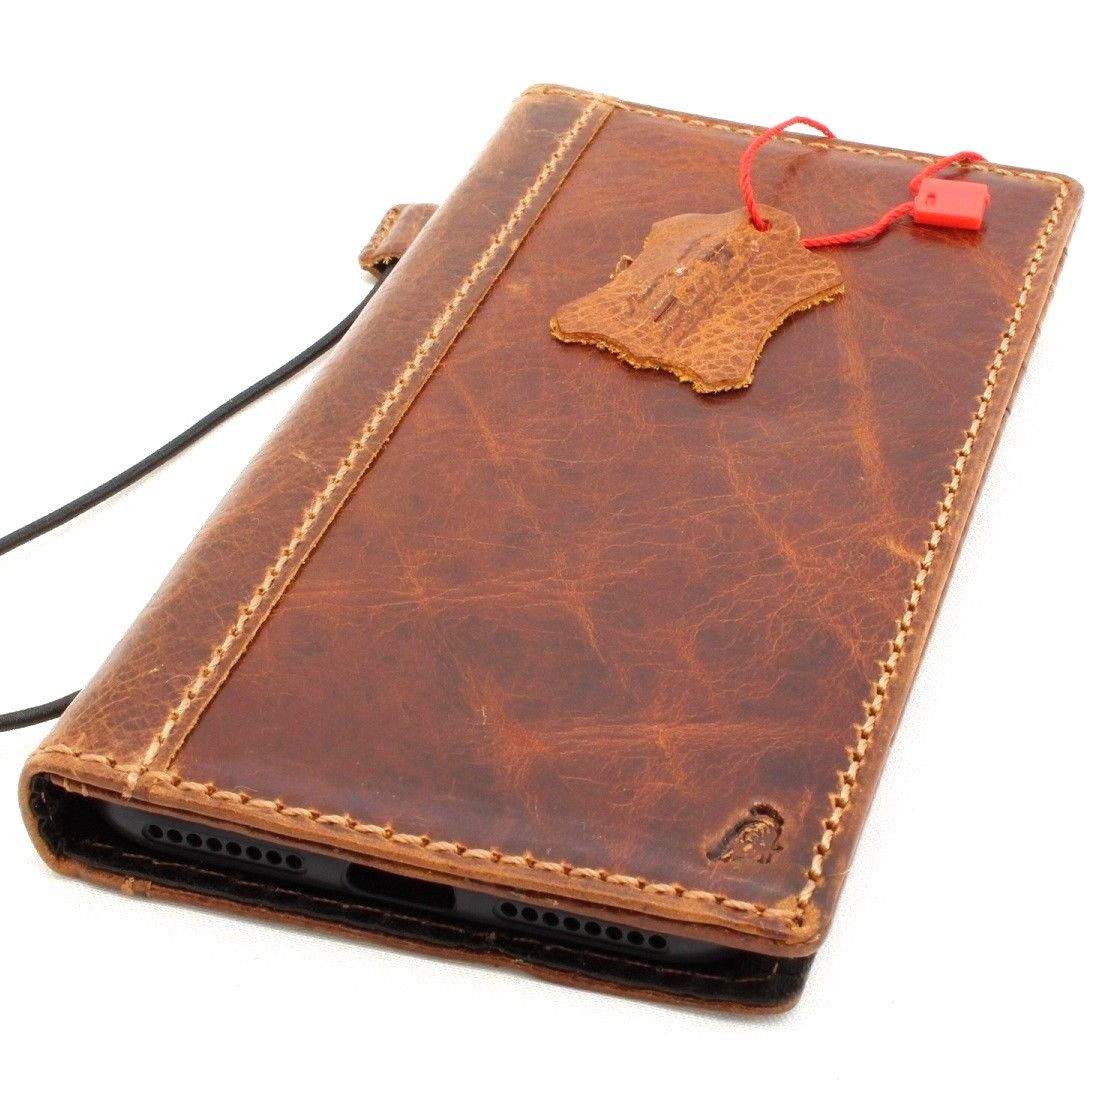 check out de6fe 1f4c4 Genuine Leather Case for iPhone 8 Plus bible book wallet cover handmade  cards slots Slim holder Jafo vintage classic Daviscase